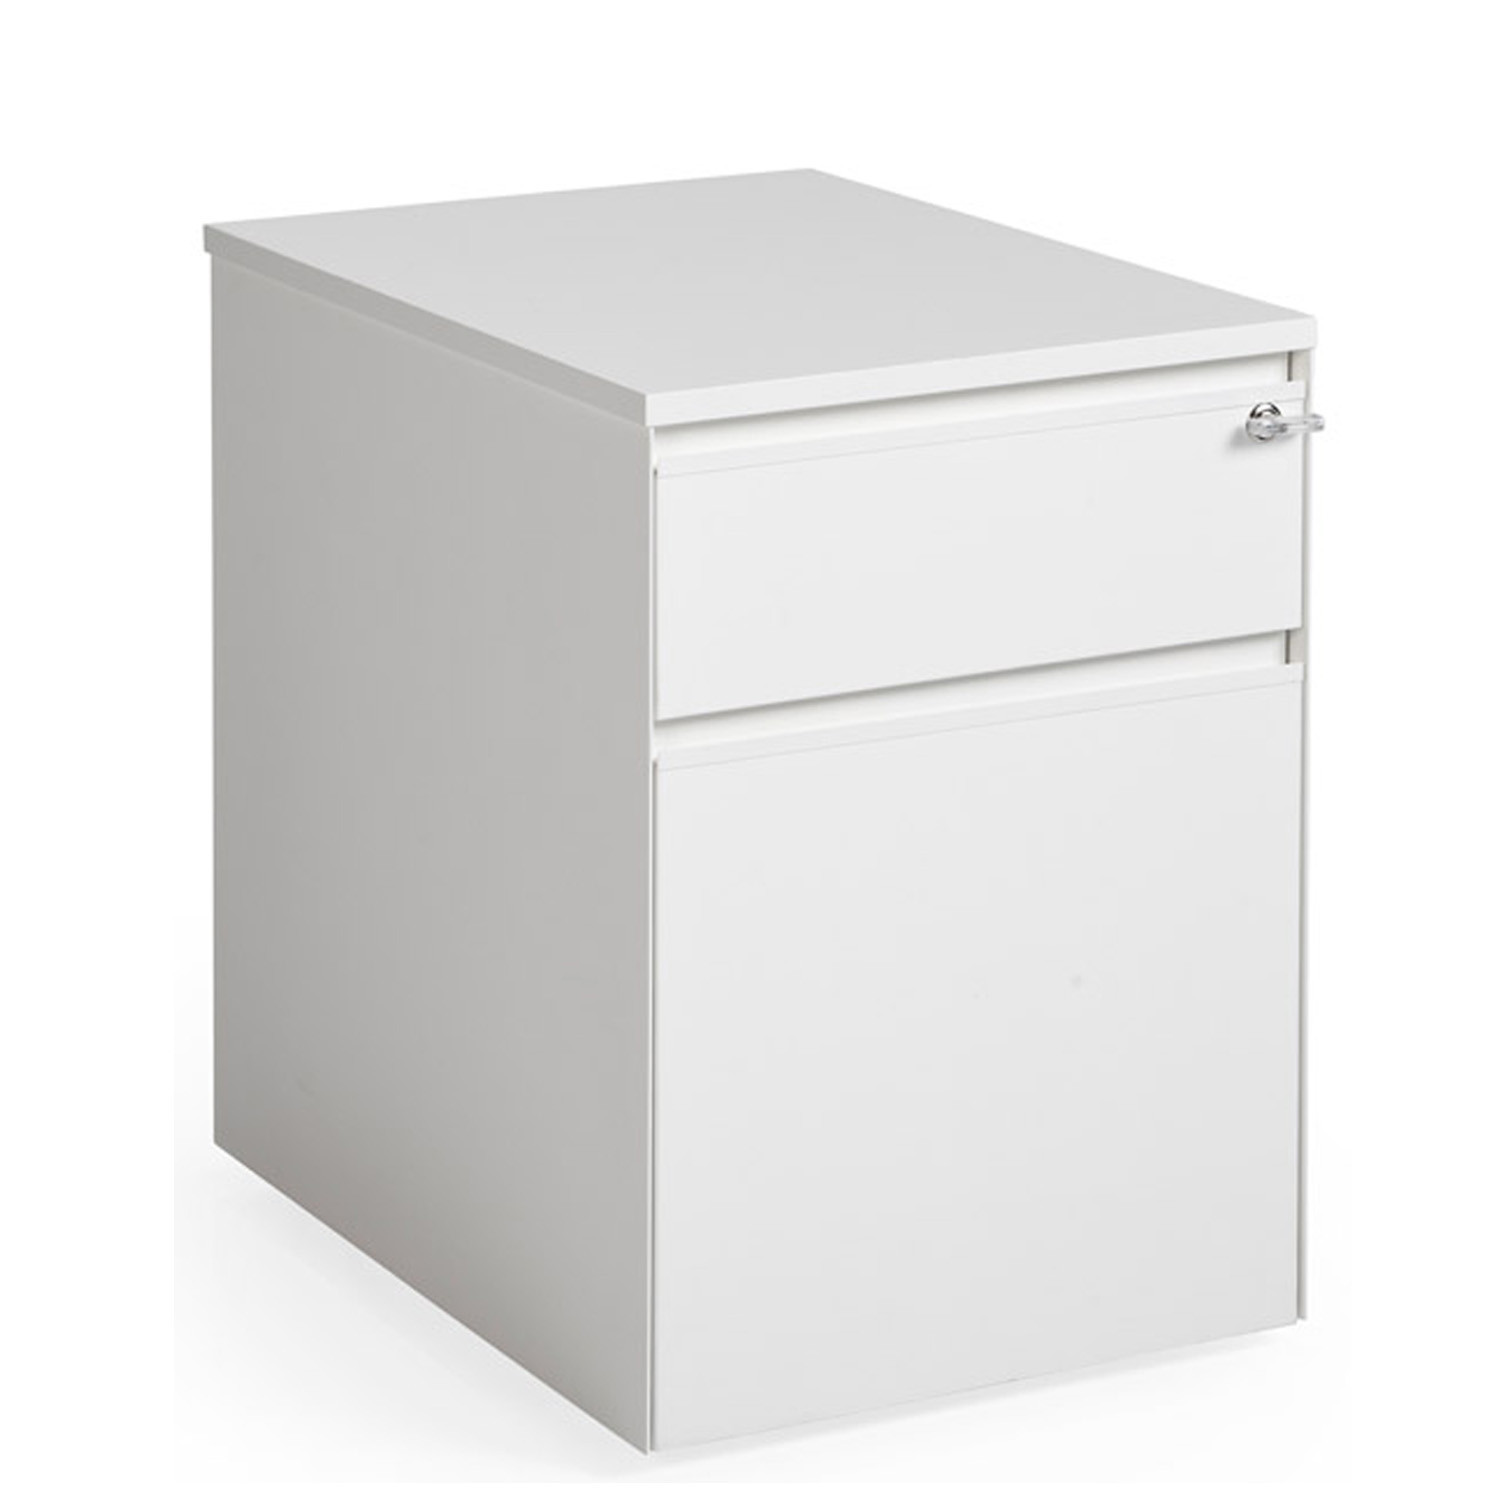 Path Pedestal Cabinet - 2 Drawers